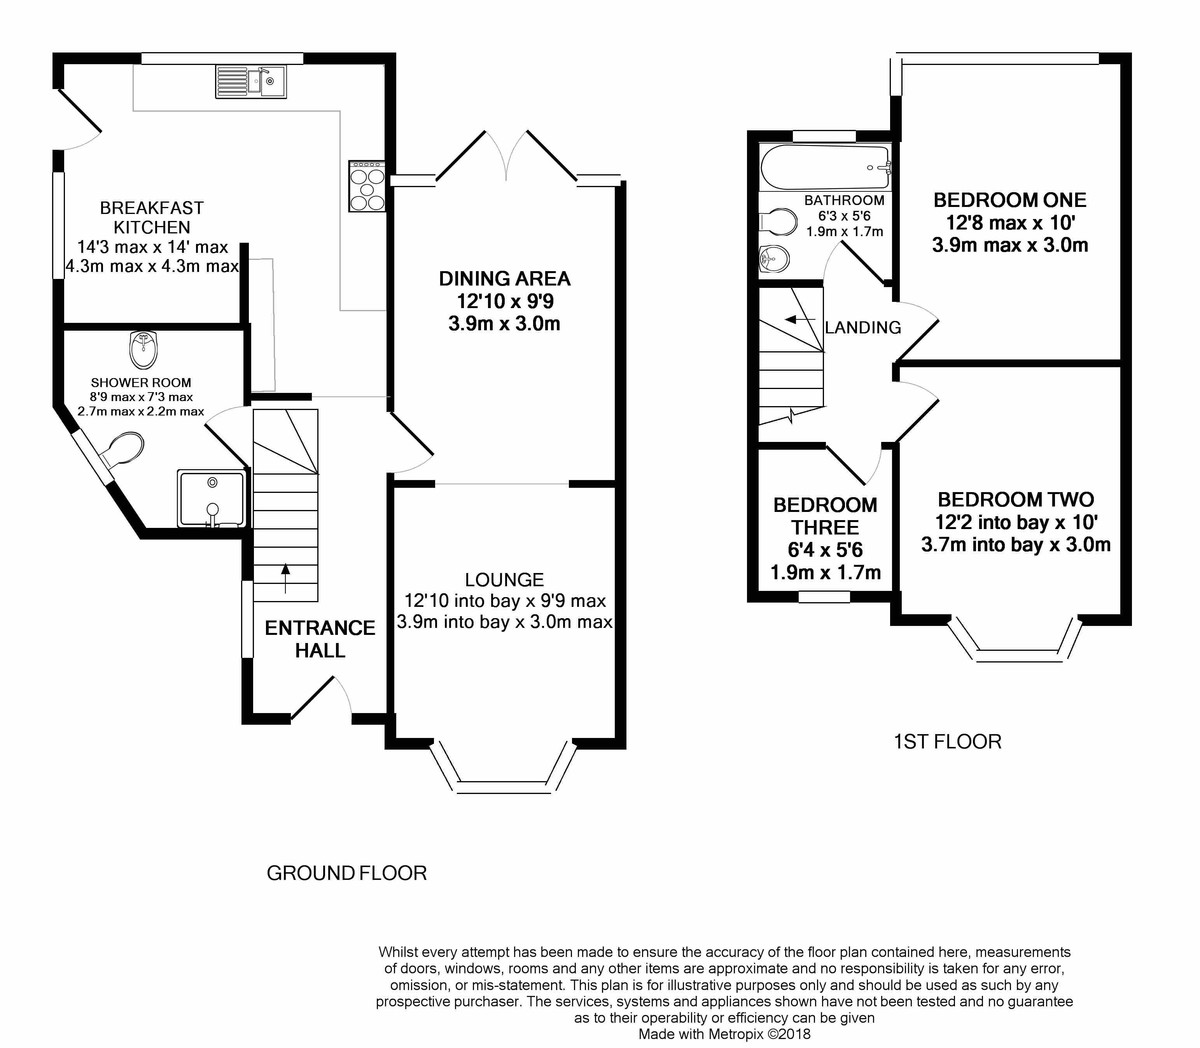 Widney Avenue, Selly Oak floorplan 1 of 1